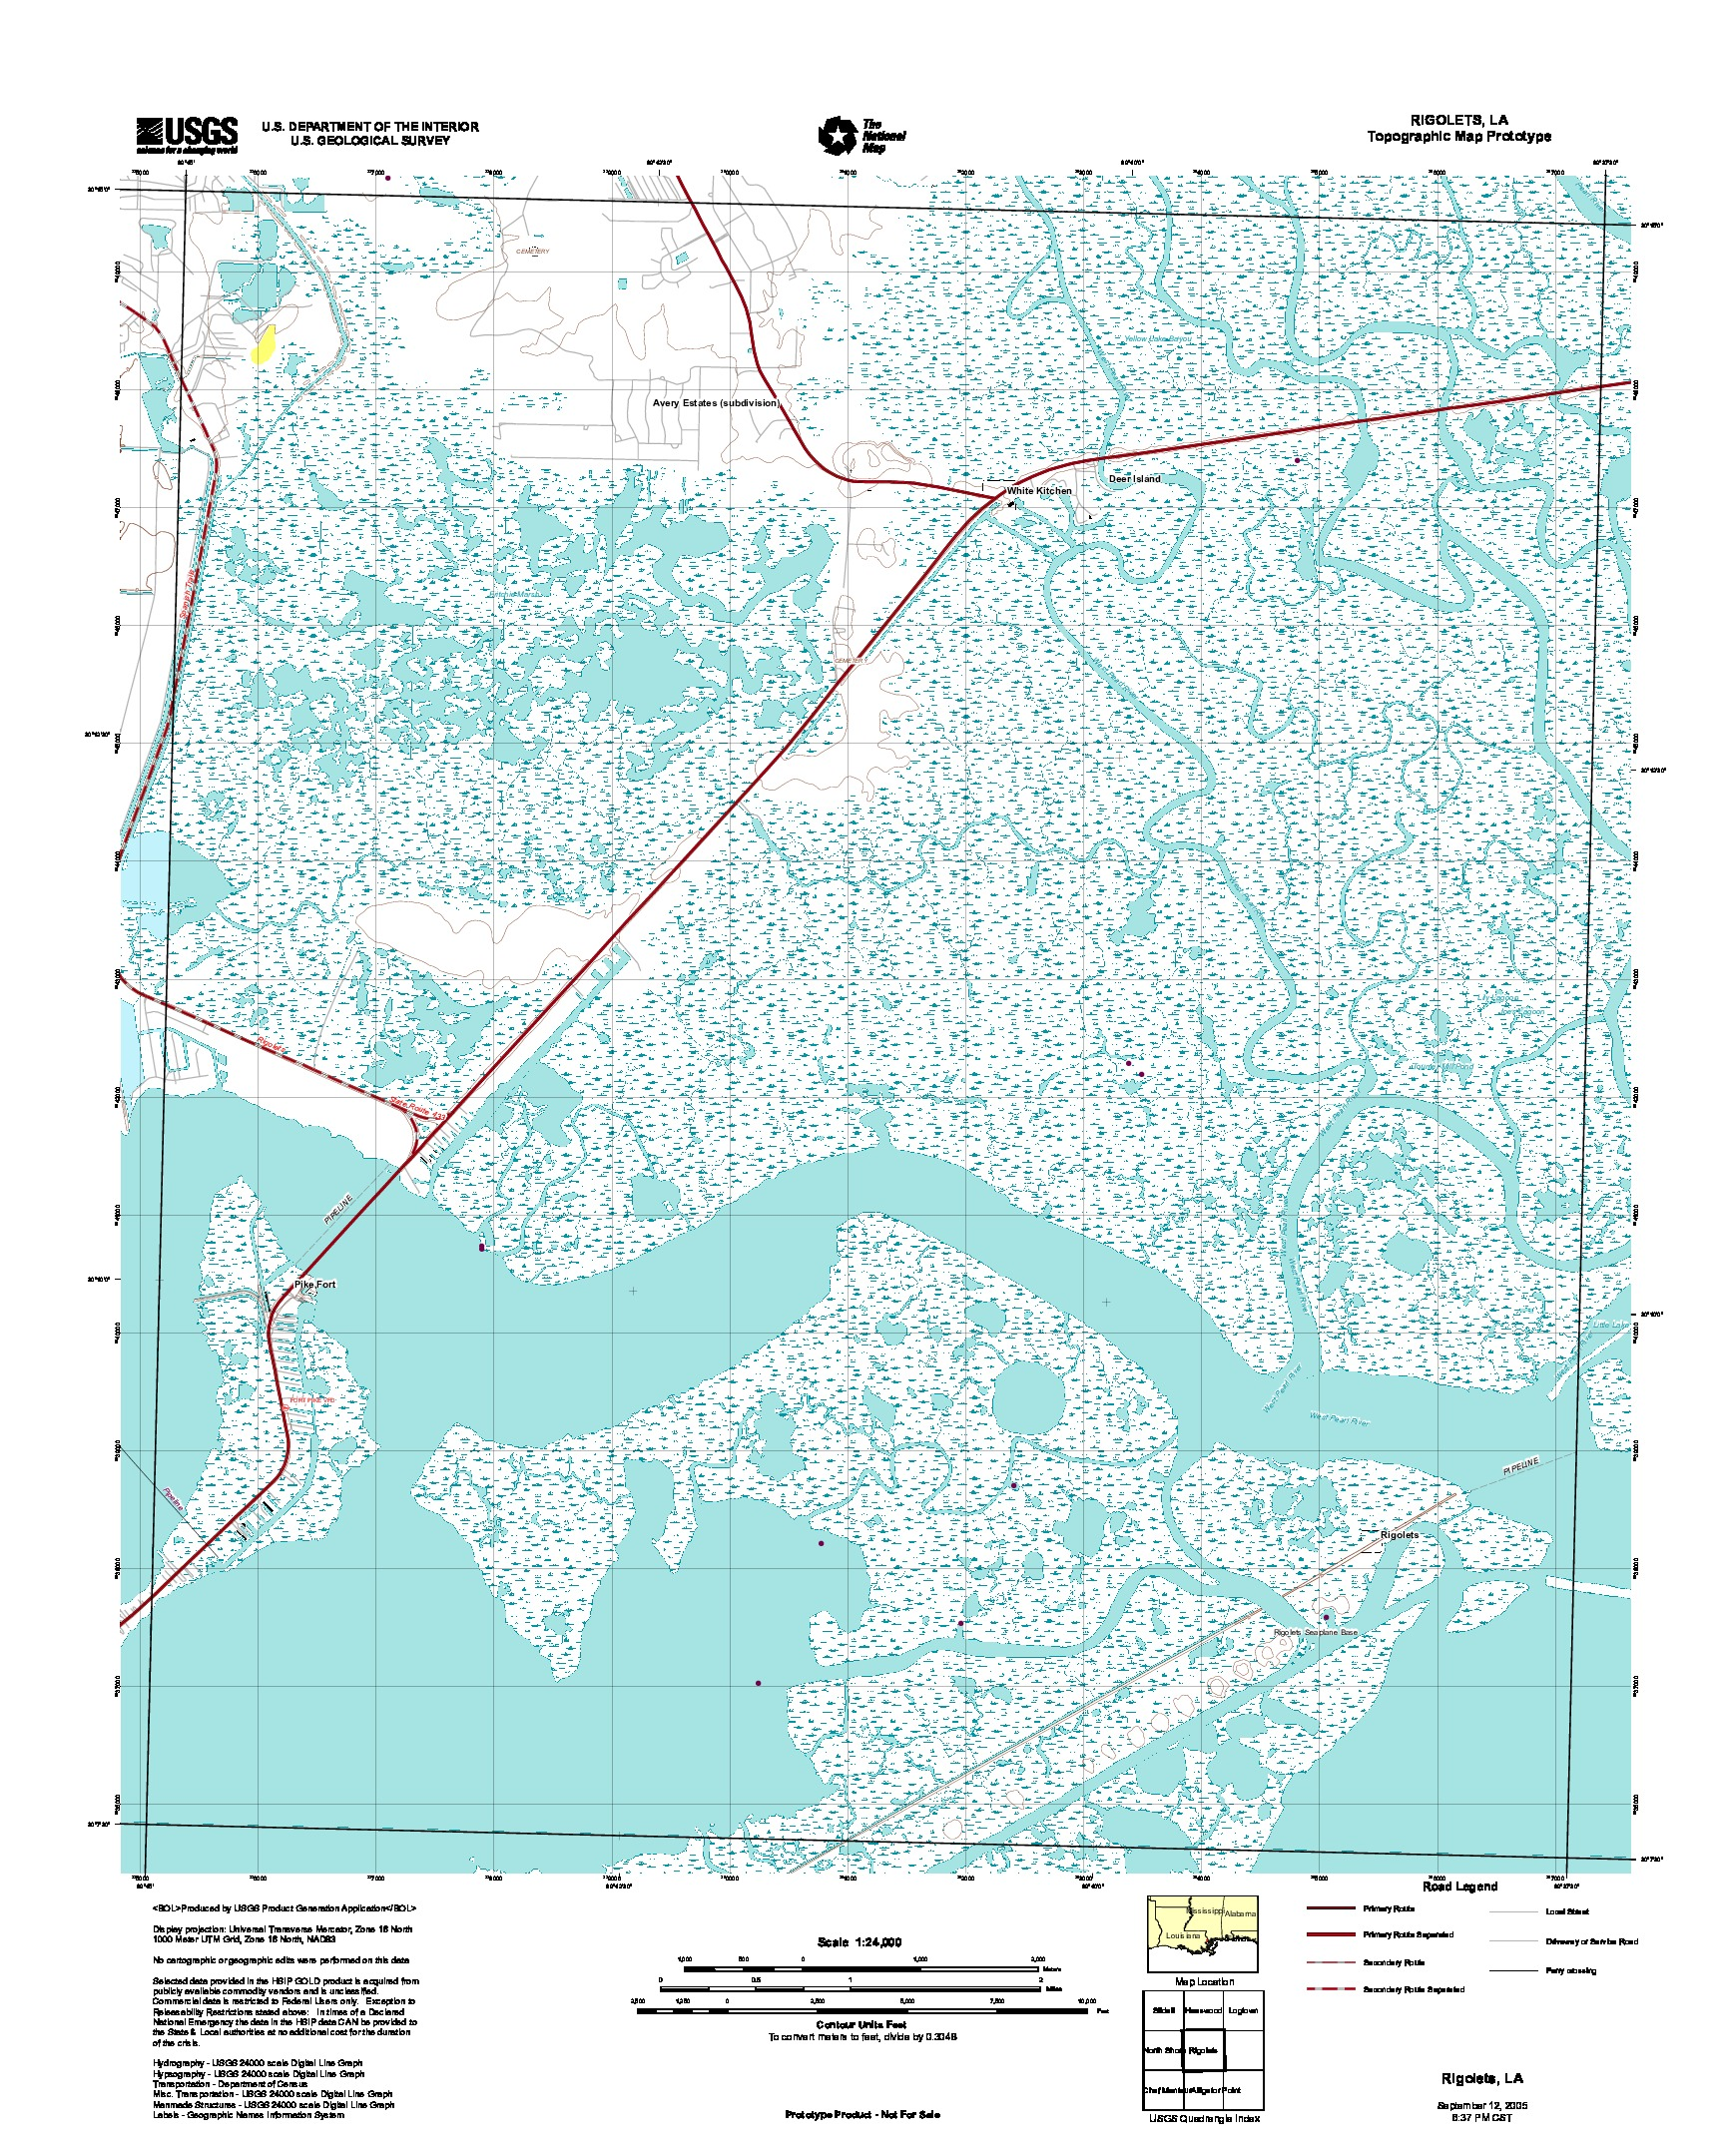 Rigolets, Topographic Map Prototype, Louisiana, United States, September 12, 2005